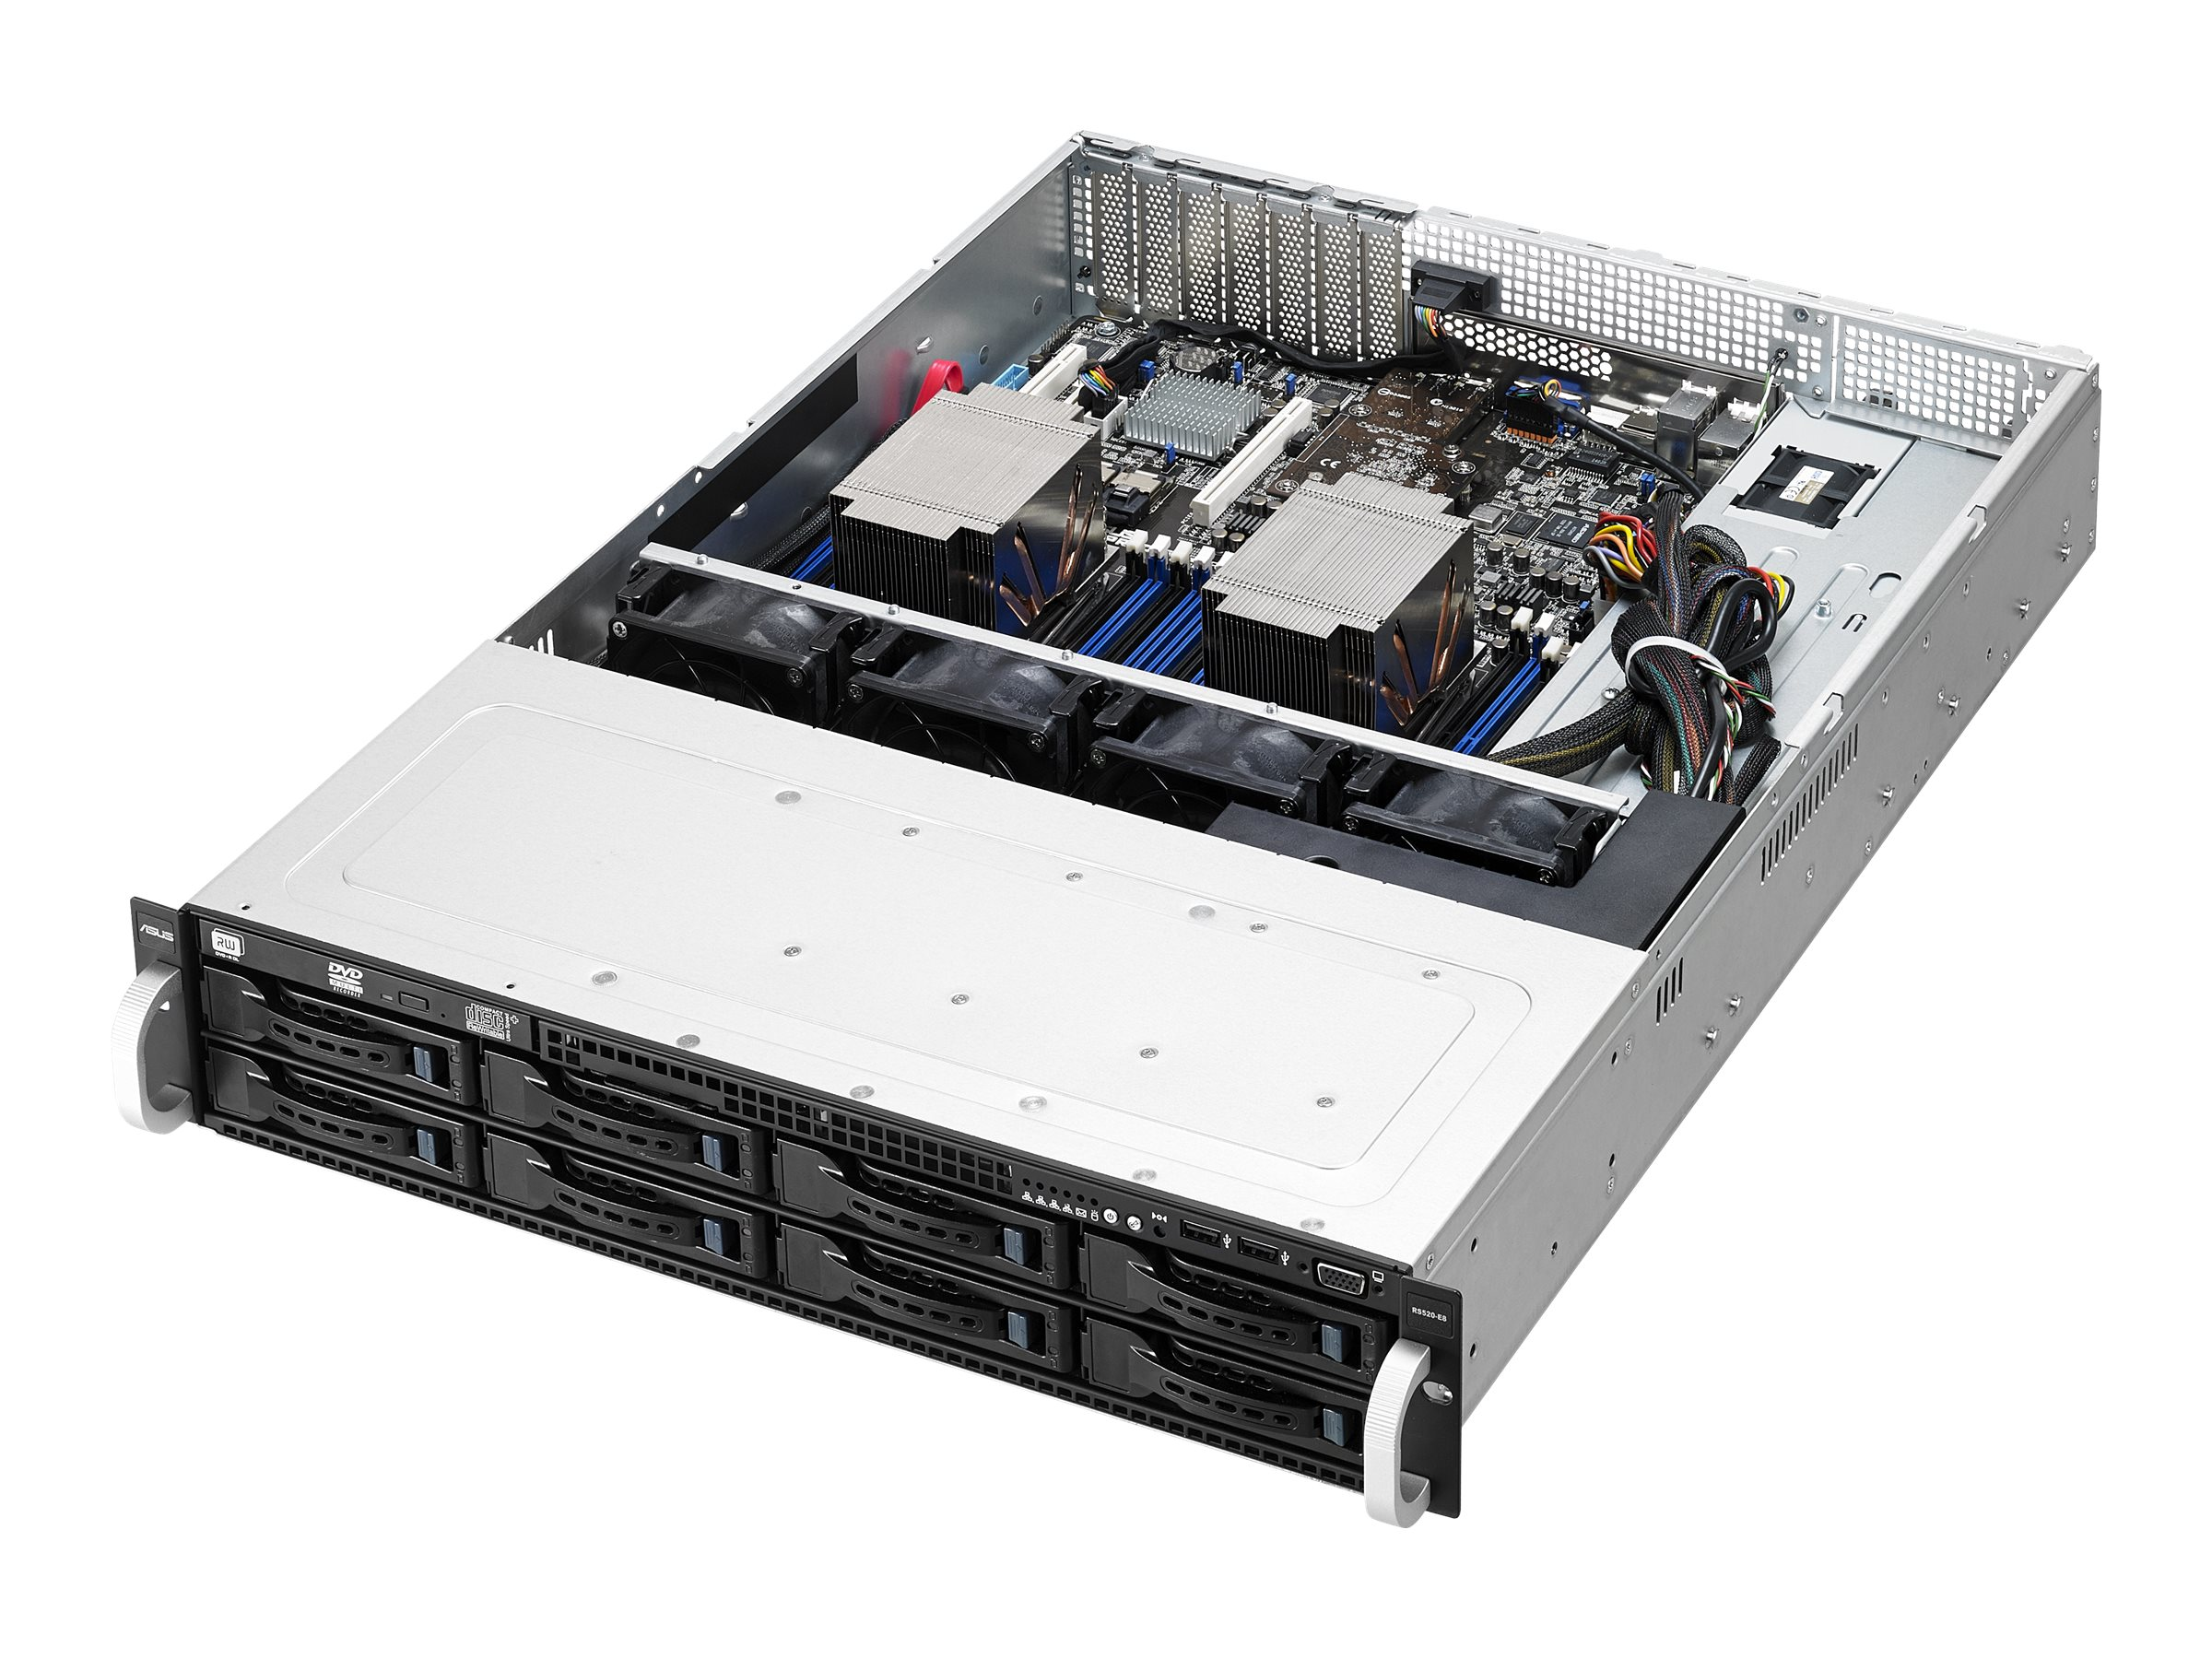 Asus RS520-E8-RS8 V2 Image 2